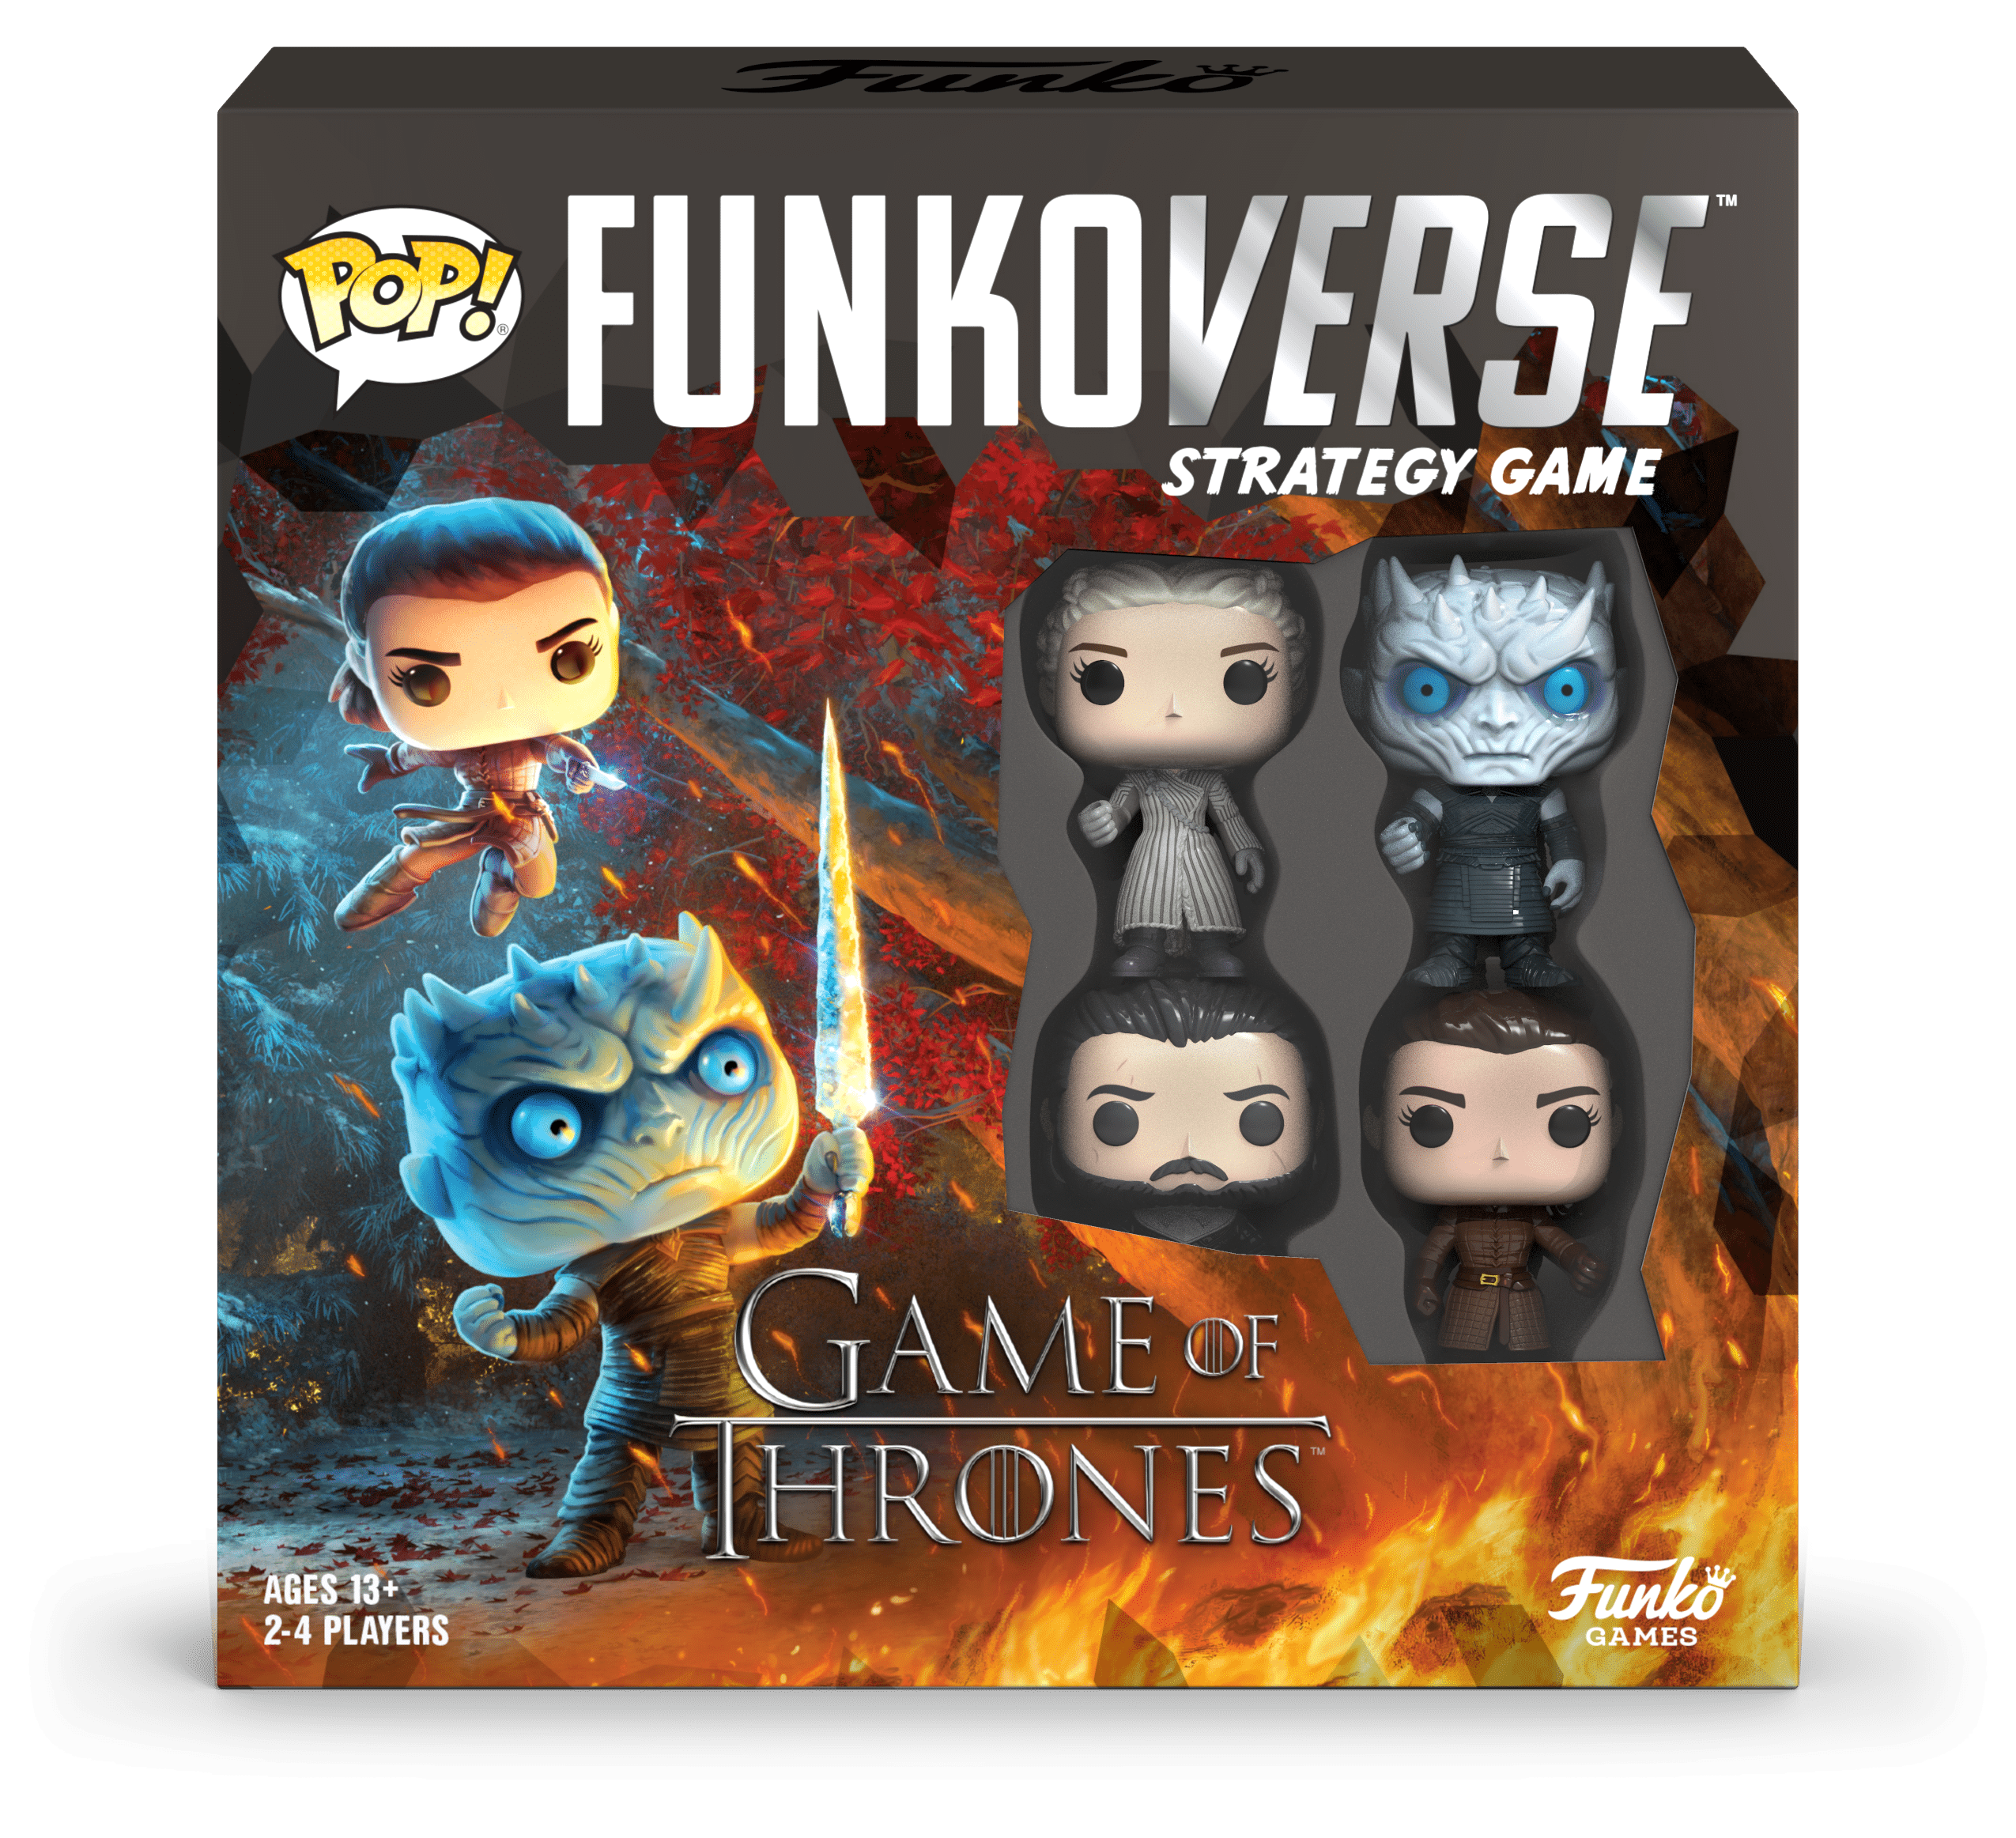 POP! Funkoverse Board Game Game of Thrones #100 Base Set